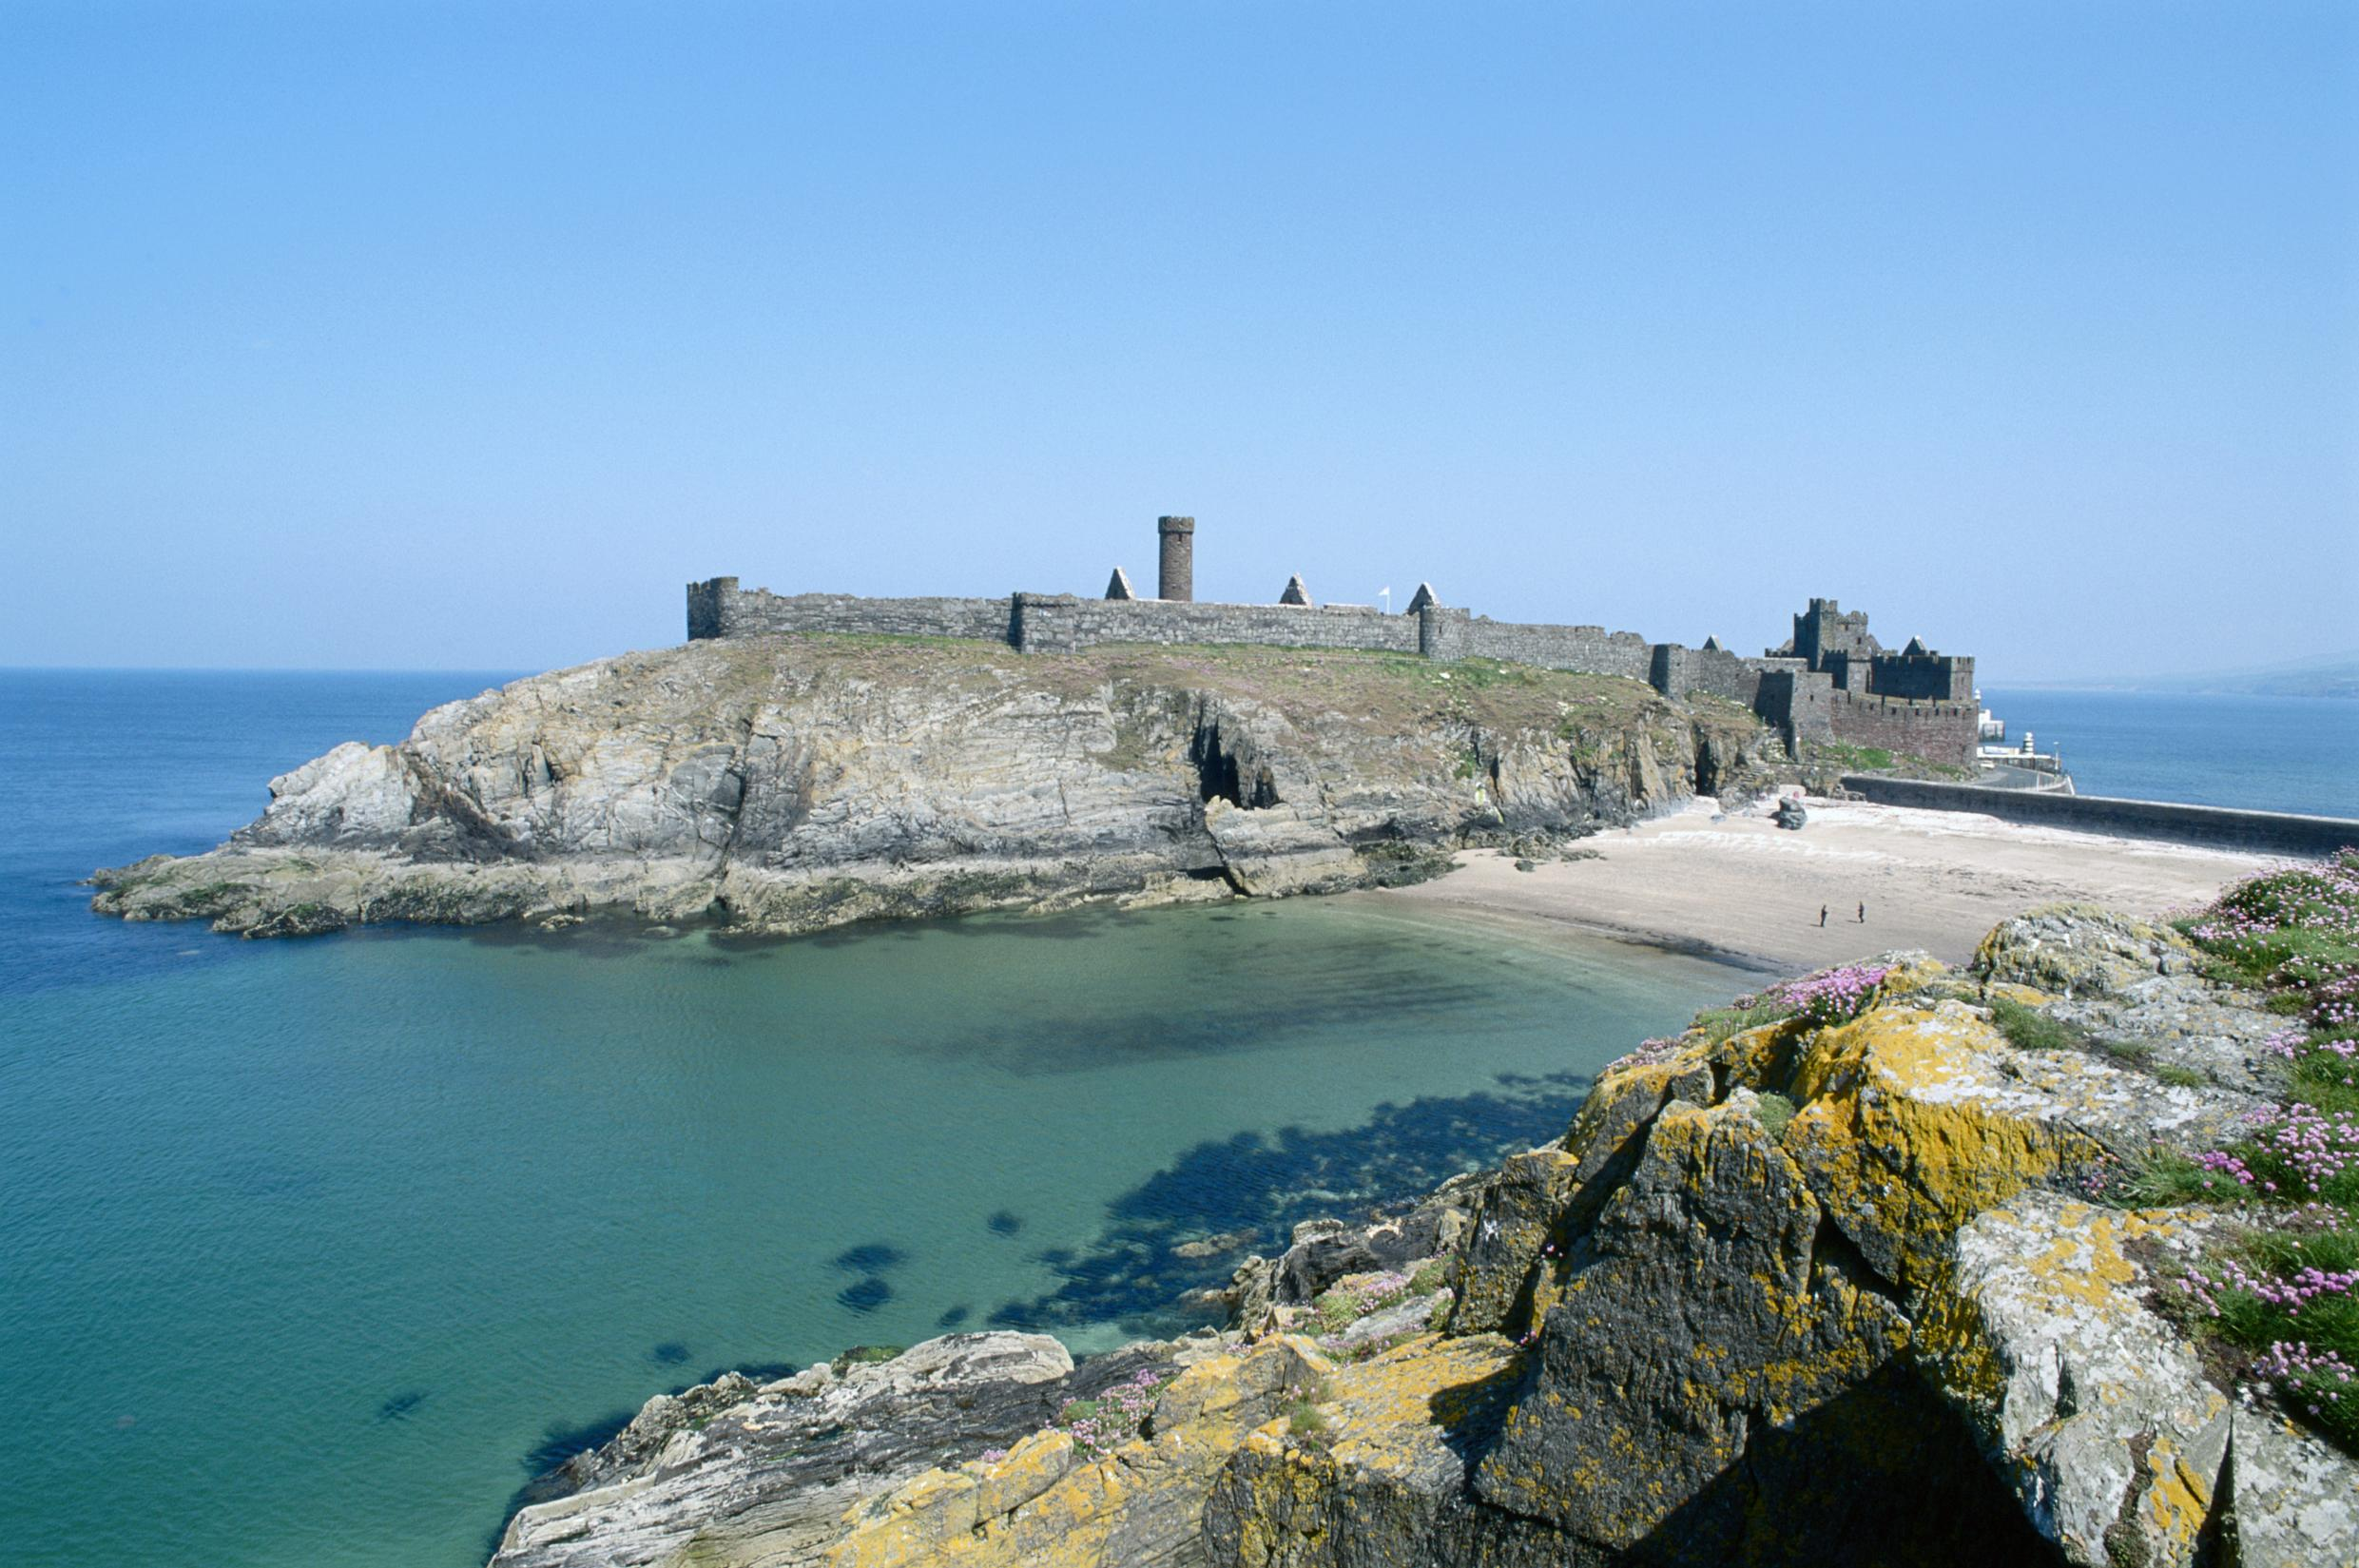 Found in between England, Scotland, Wales and Ireland, the Isle of Man boasts a stunning and extensive coastline as well as beautiful countryside and unspoilt beaches. The island has a strong identity, which coupled with its age-old traditions makes for an intriguing holiday destination.